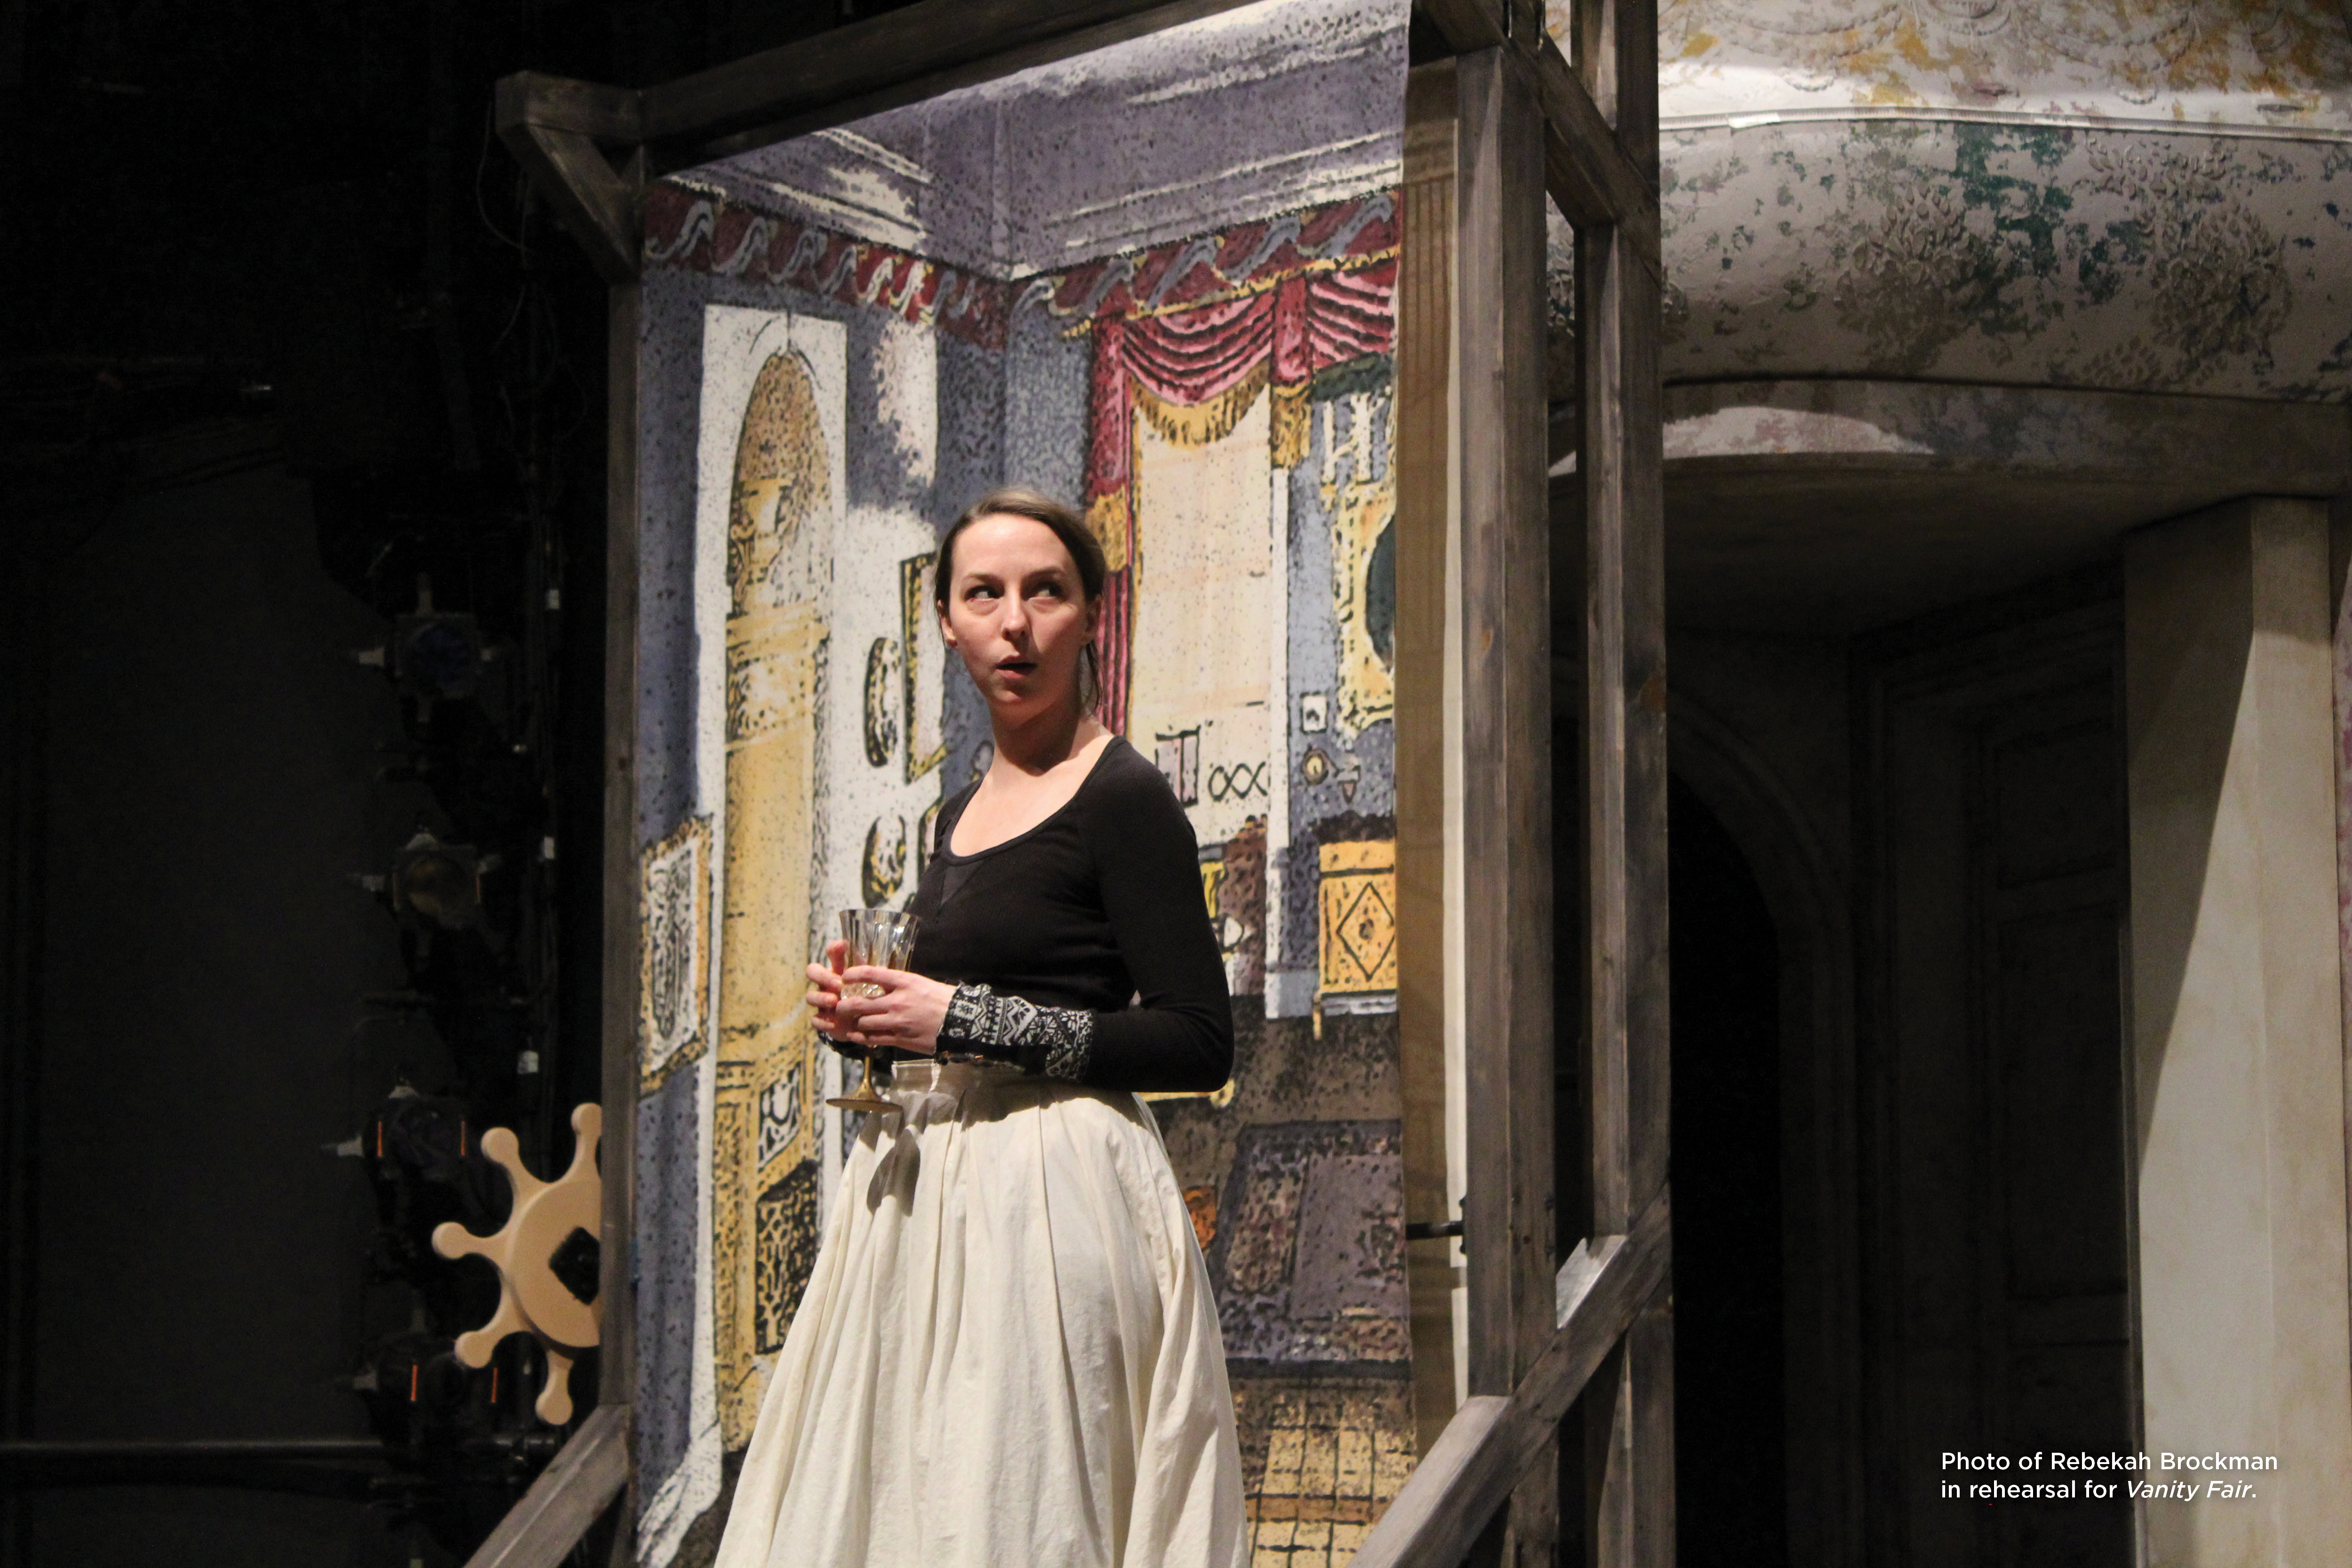 Photo of Rebekah Brockman in rehearsal for Vanity Fair.